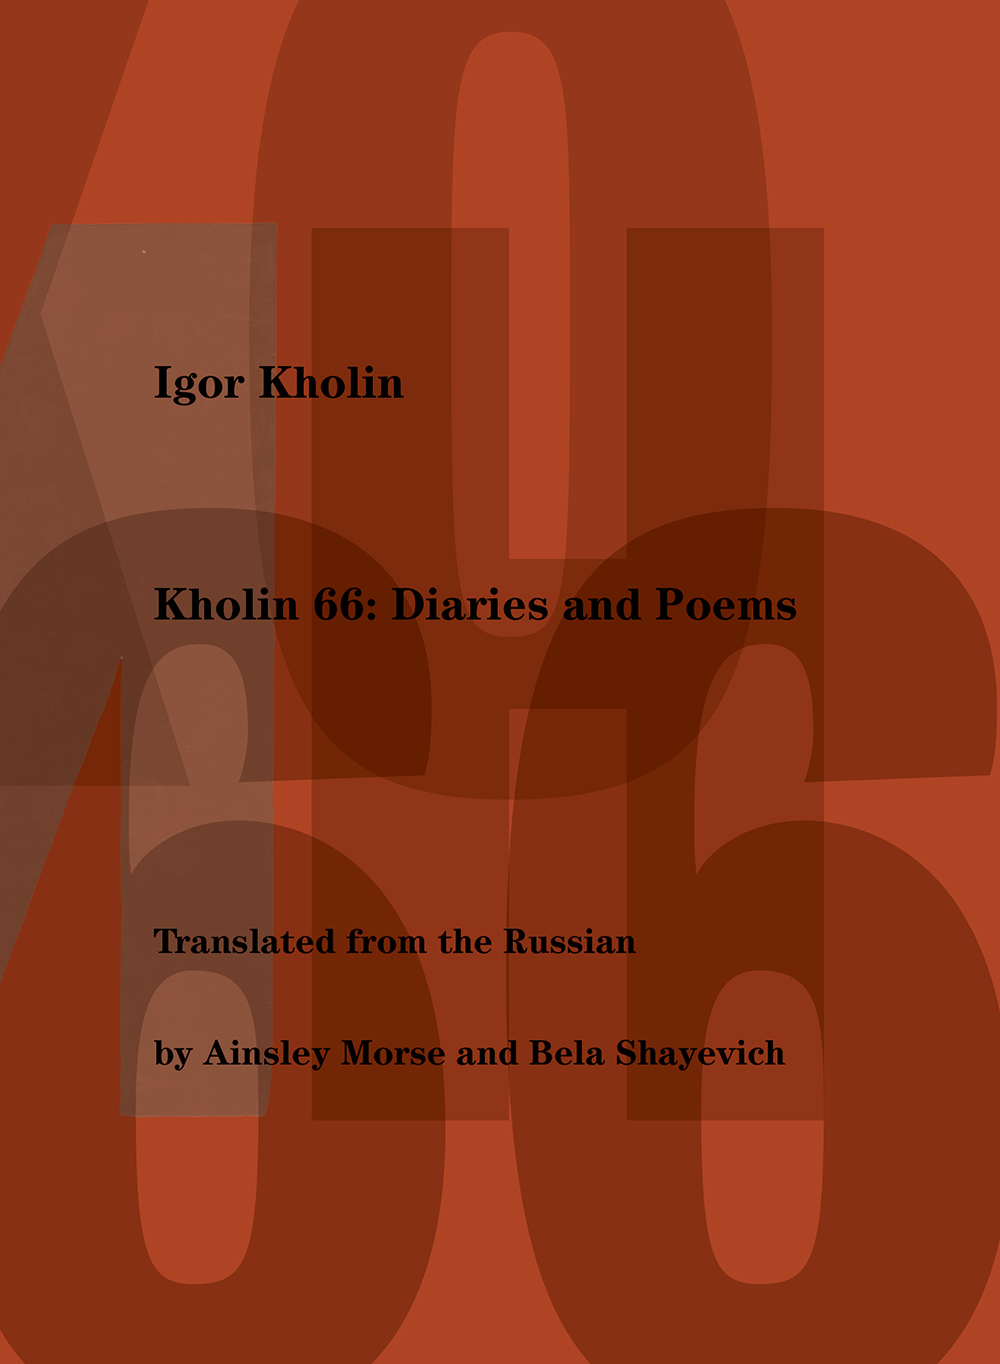 kholin 66: diaries and poems | igor kholin | ugly duckling presse